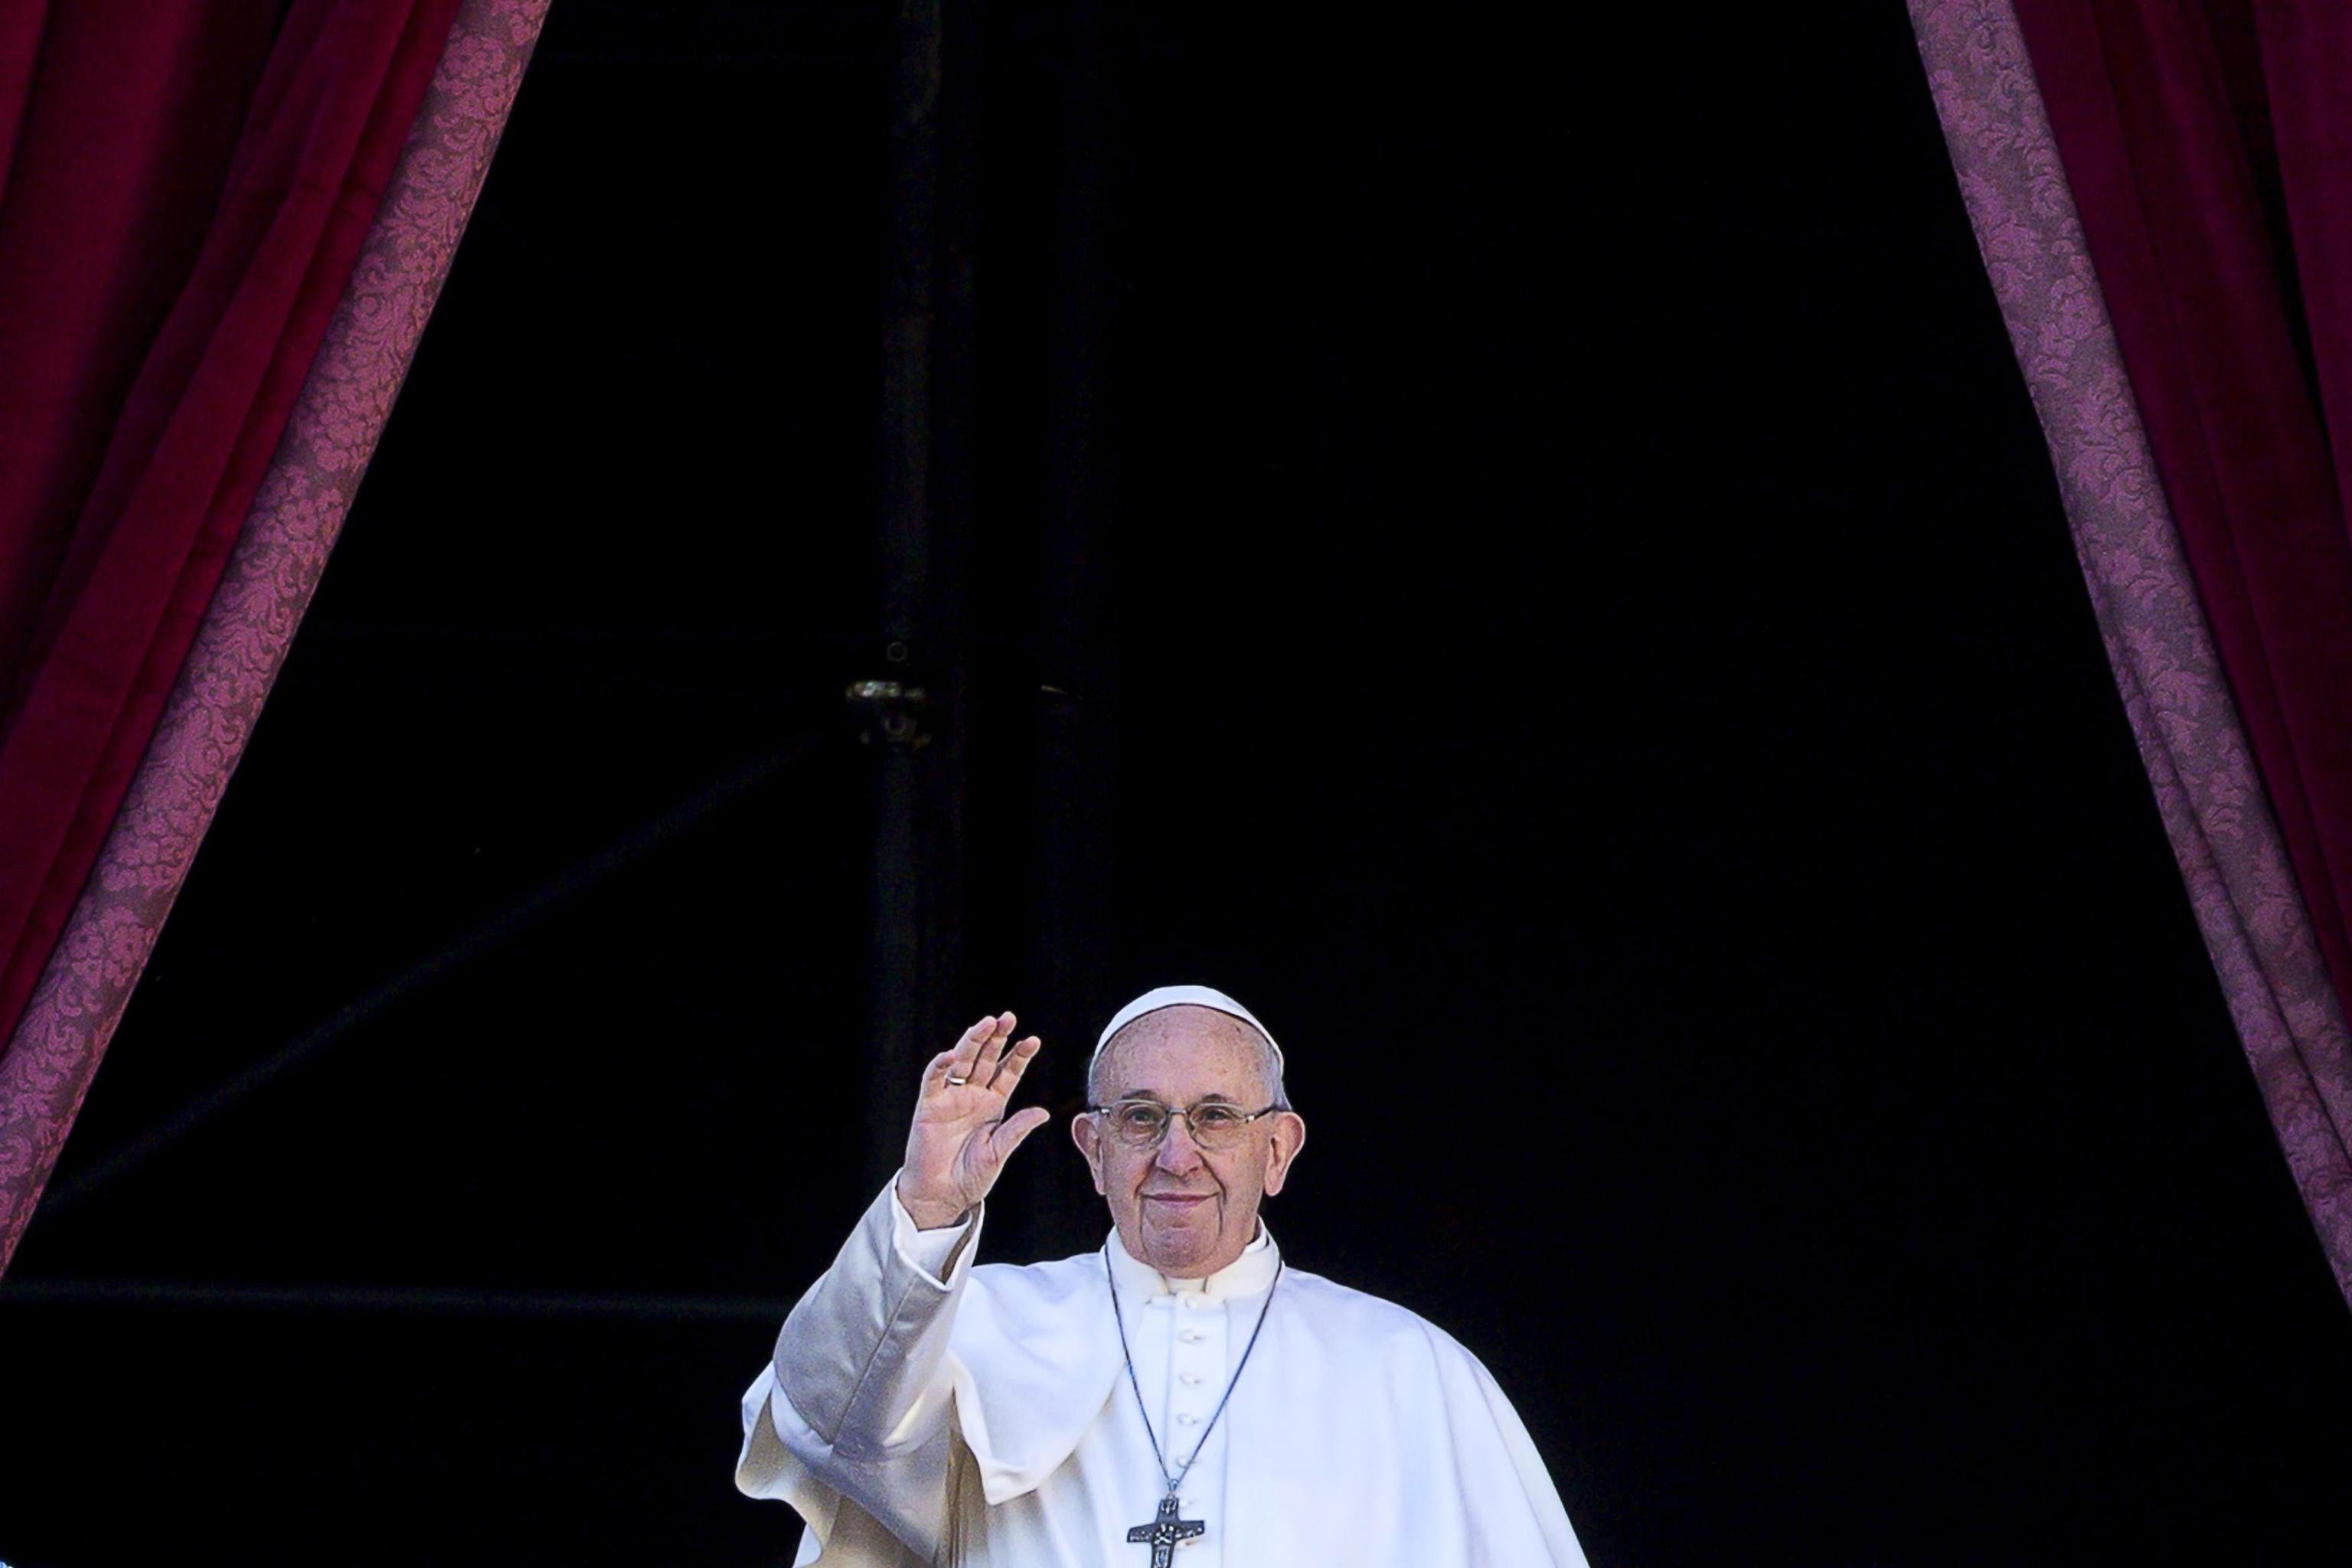 See differences as an asset, not danger, pope says in Christmas message